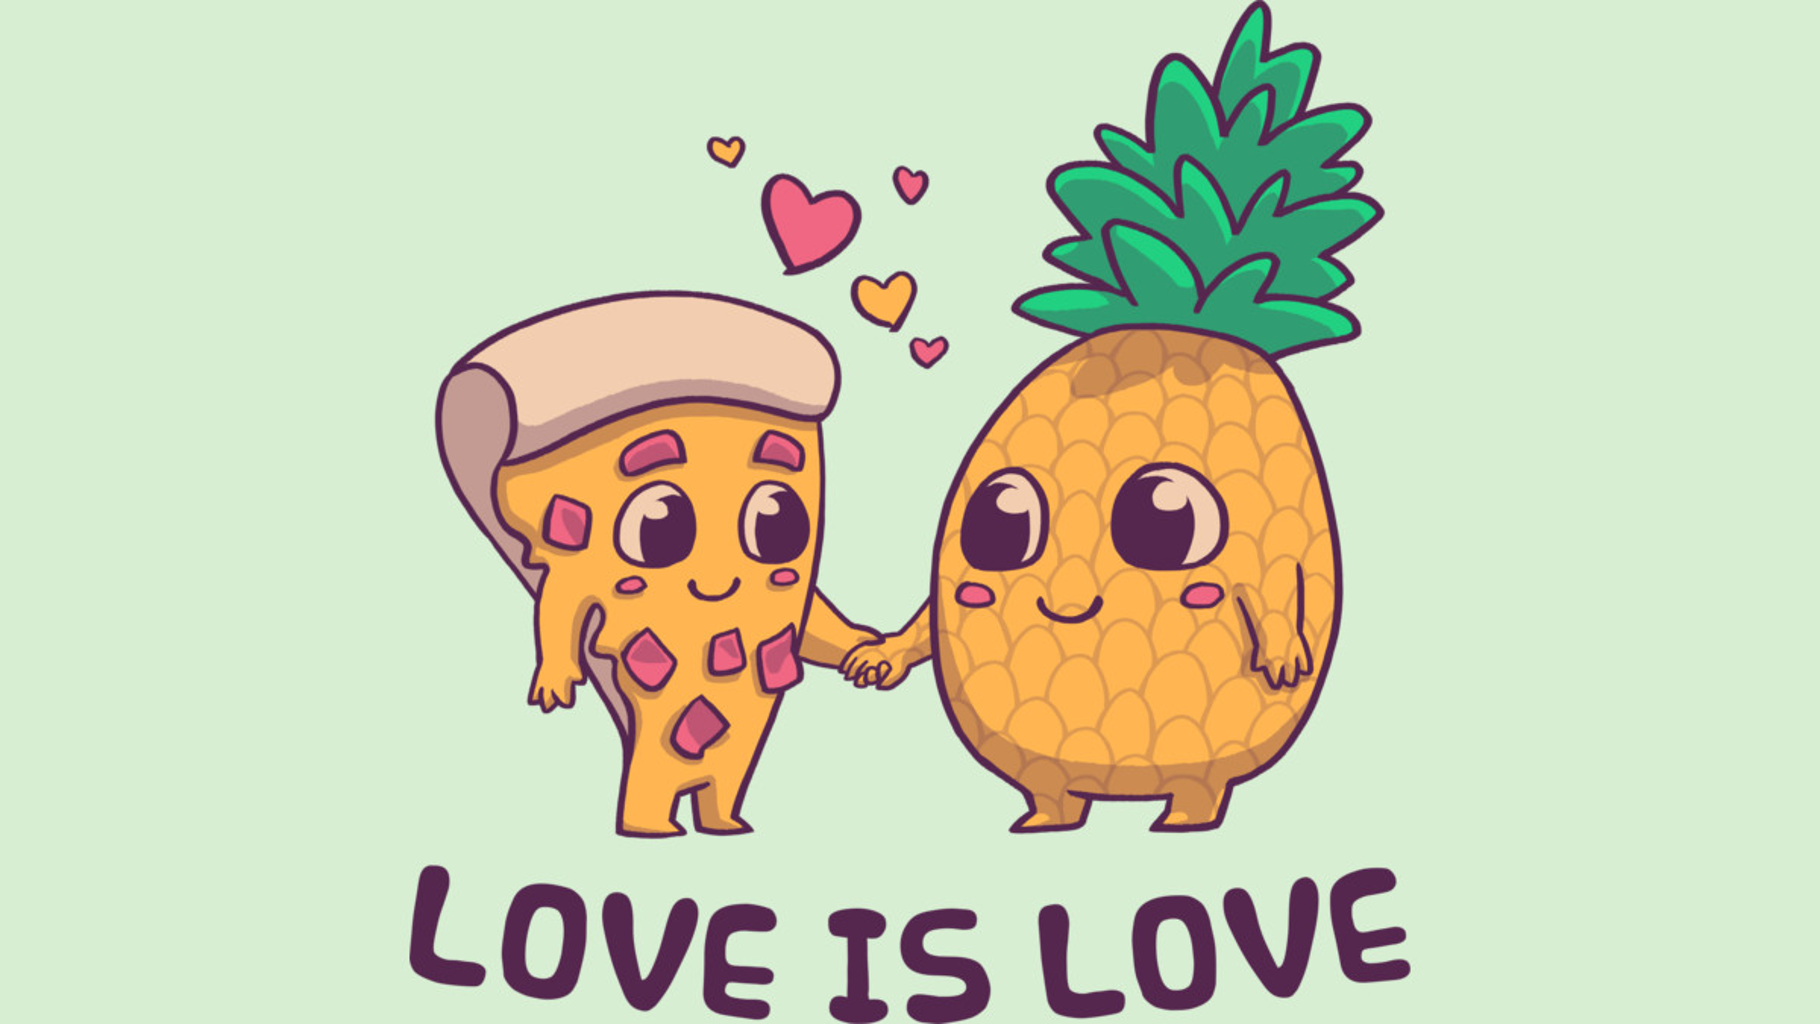 Design by Humans: Love is Love